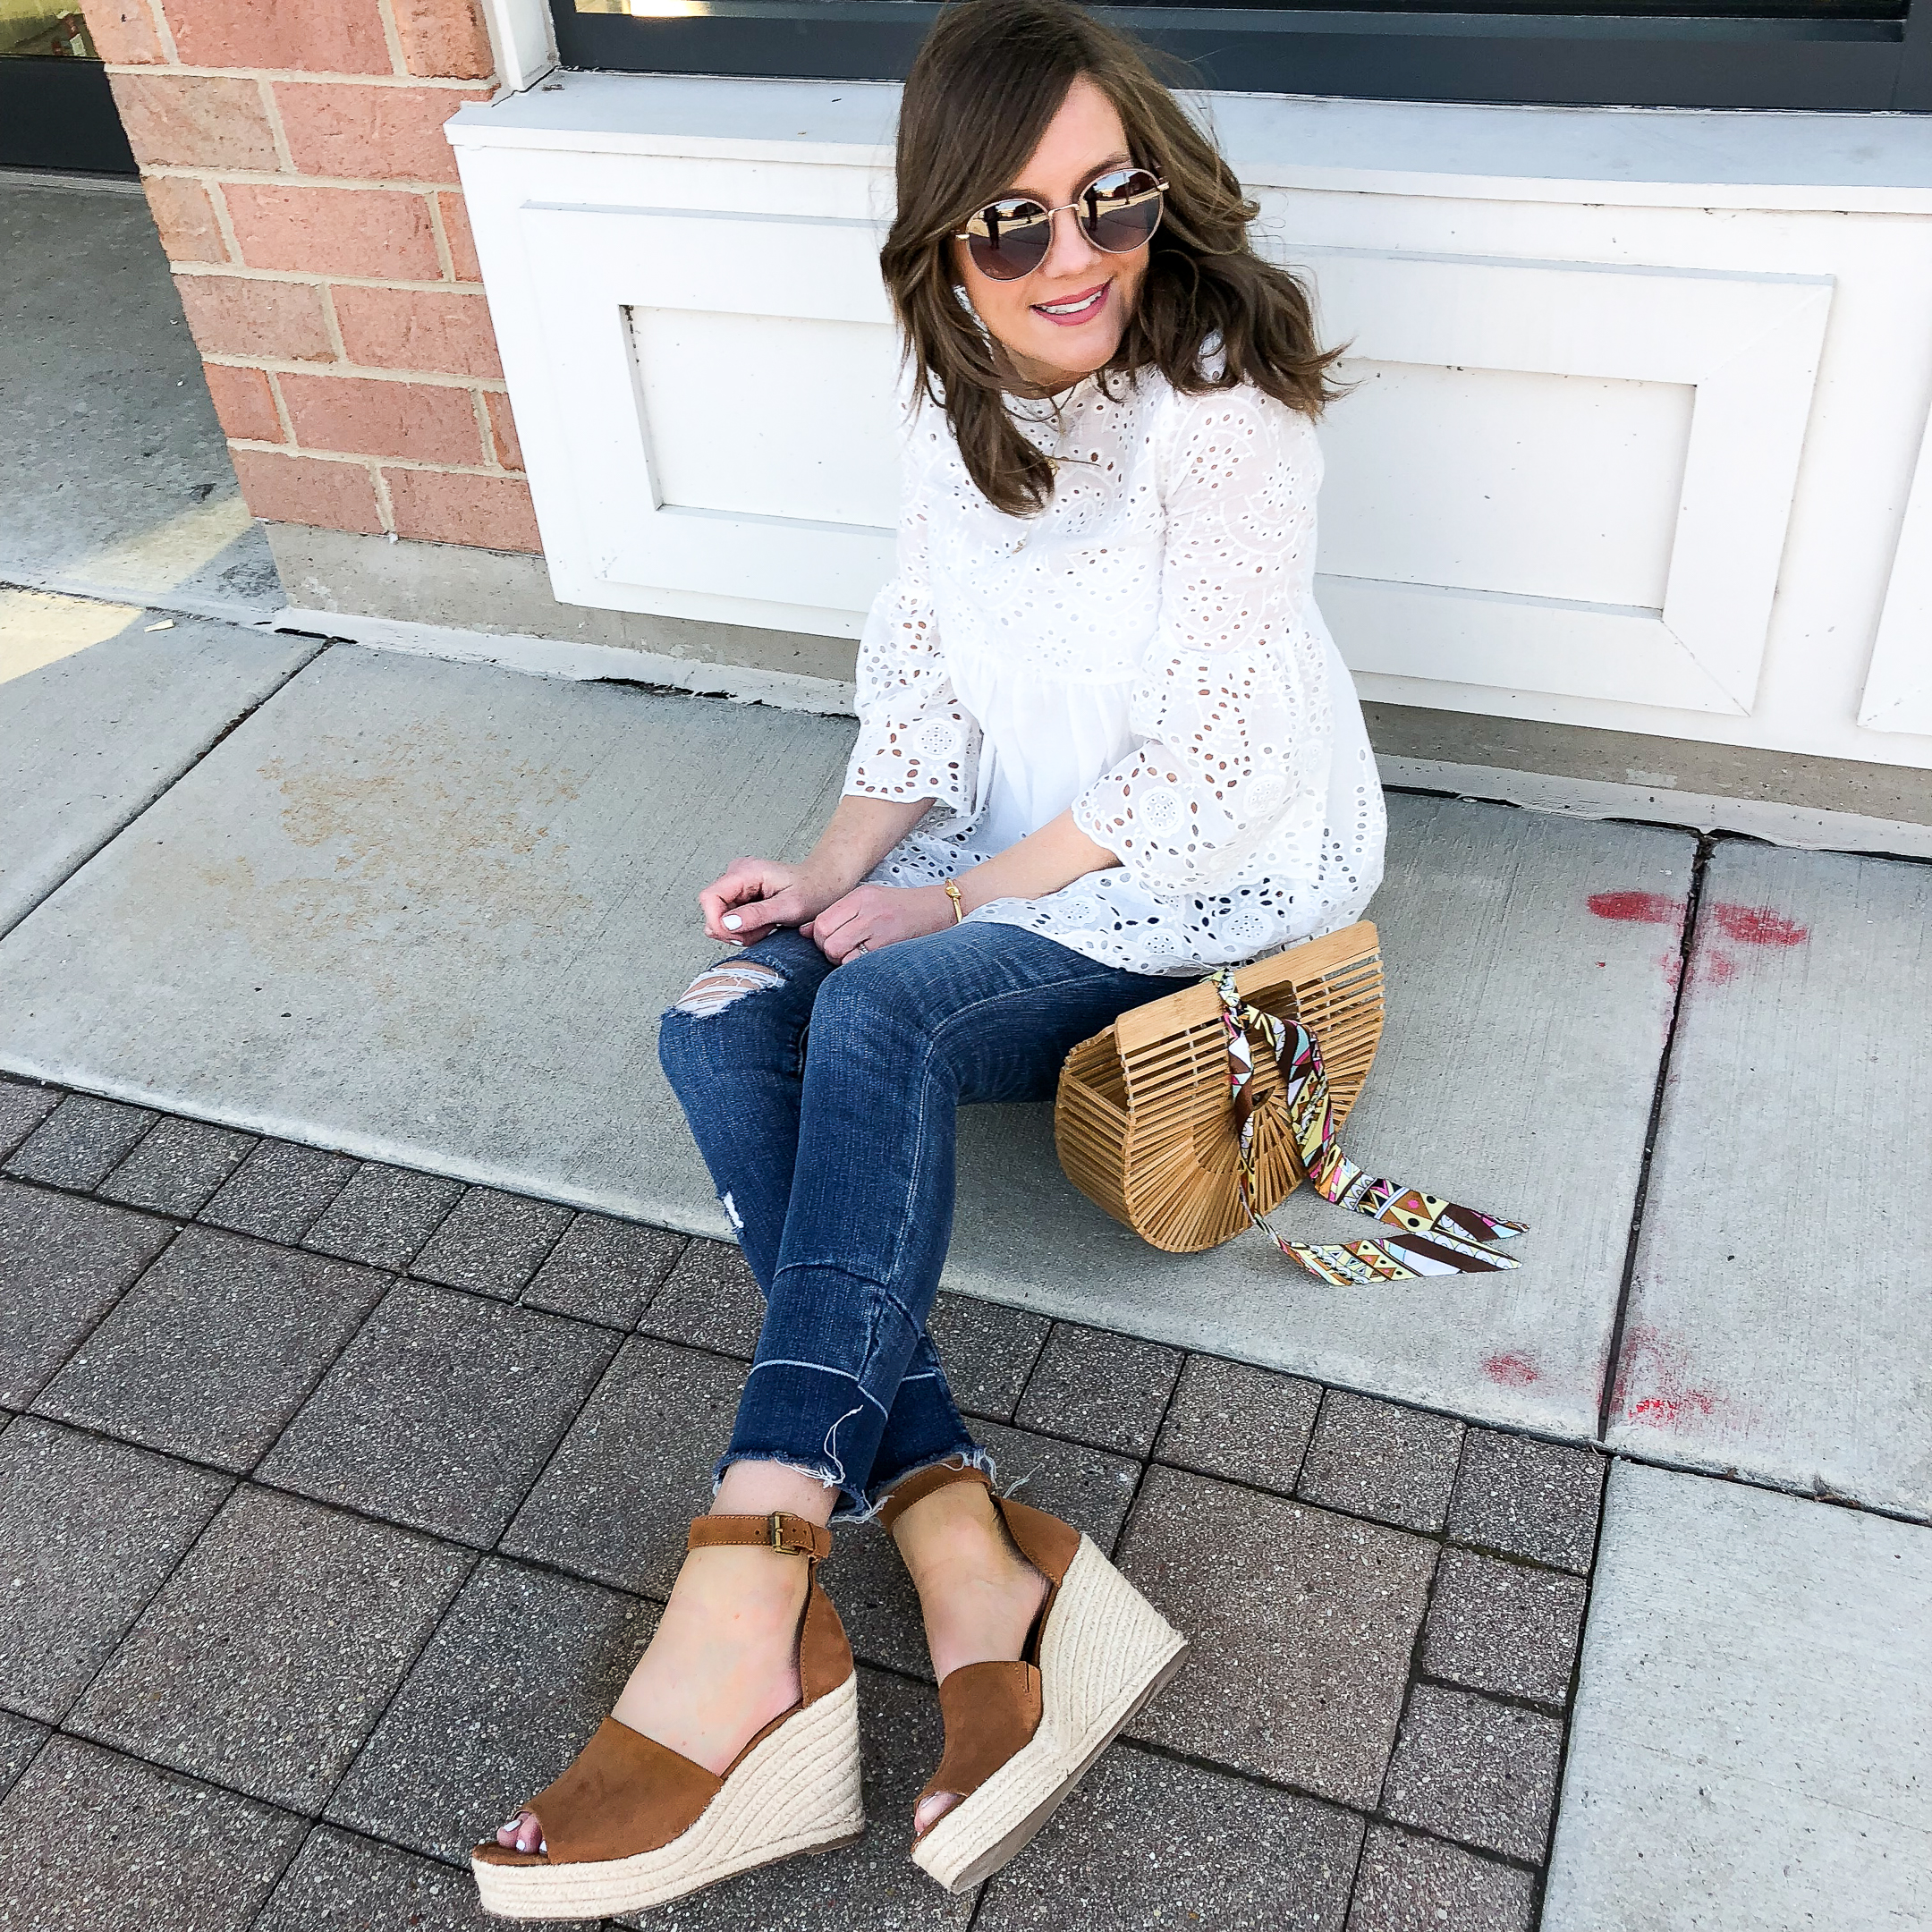 wedge-sandal-outfit-espadrille-wedges-distressed-denim-eyelet-blouse